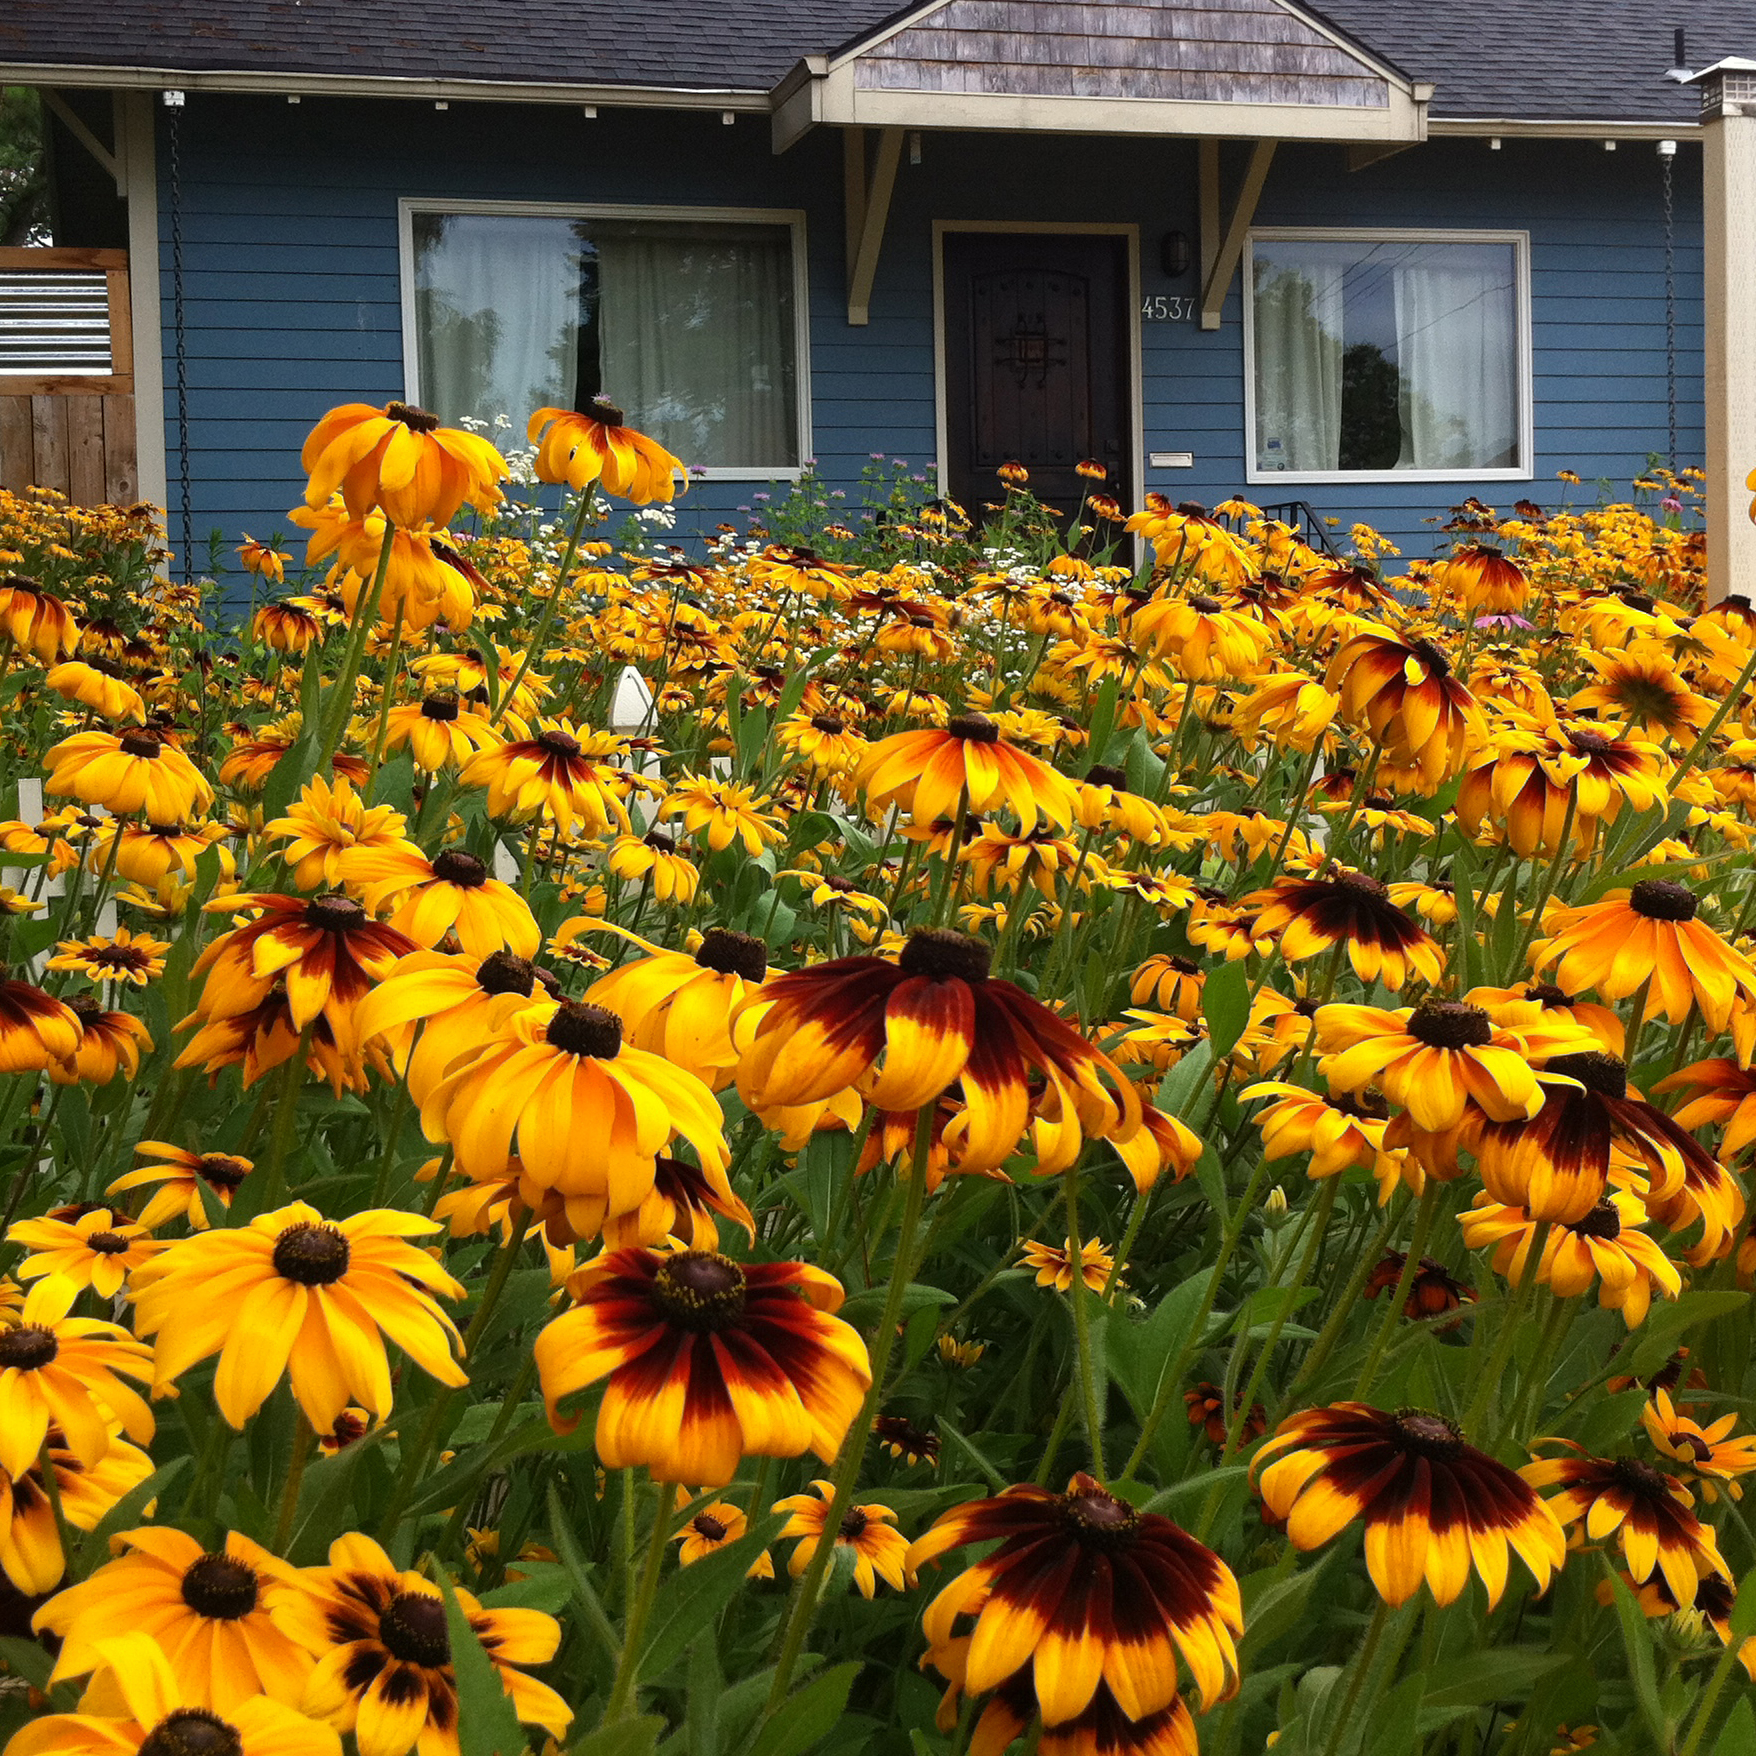 A yard bursting with bright yellow black-eyed Susans nearly obscures the blue house behind it.